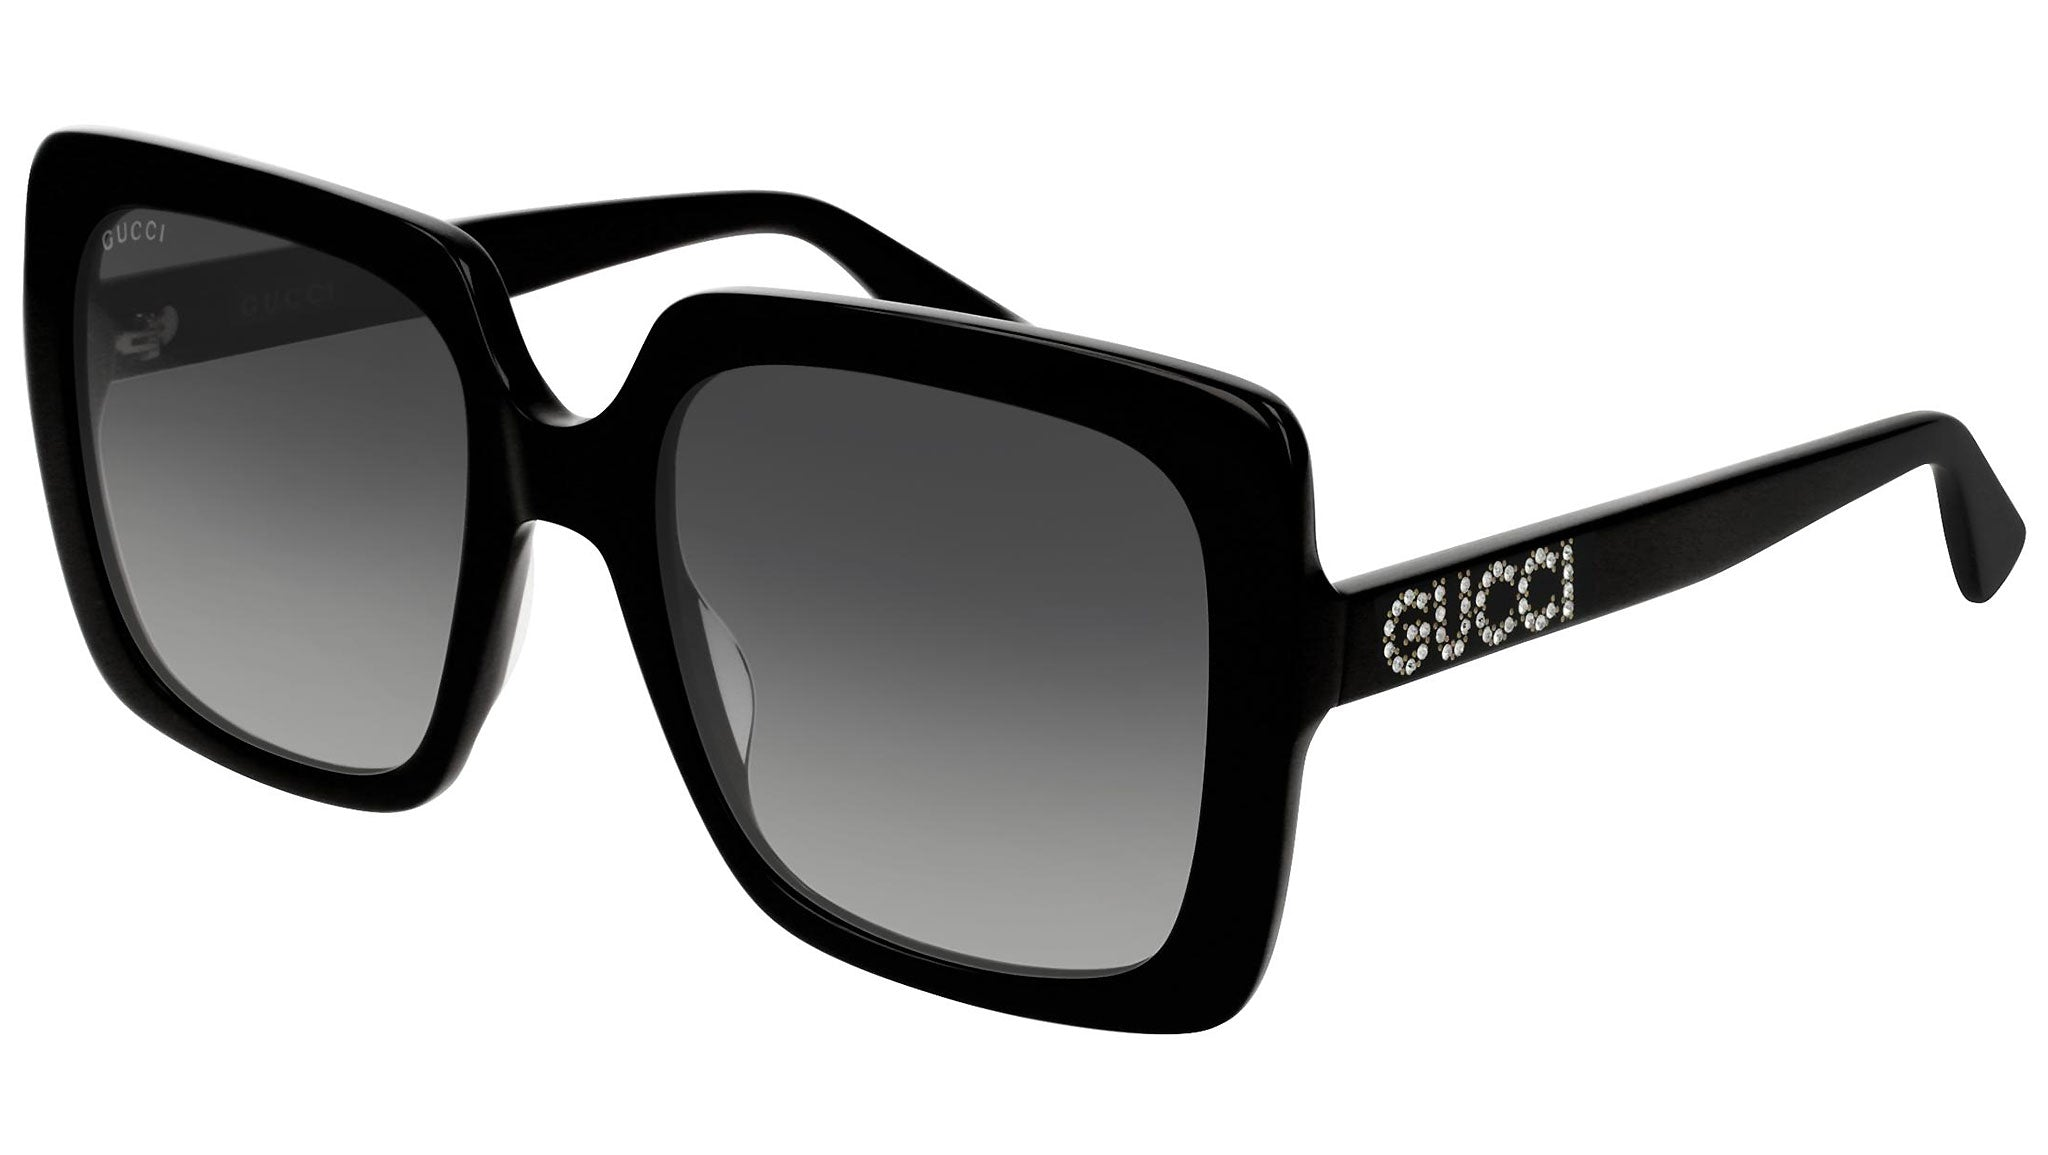 GG0418S shiny black and grey